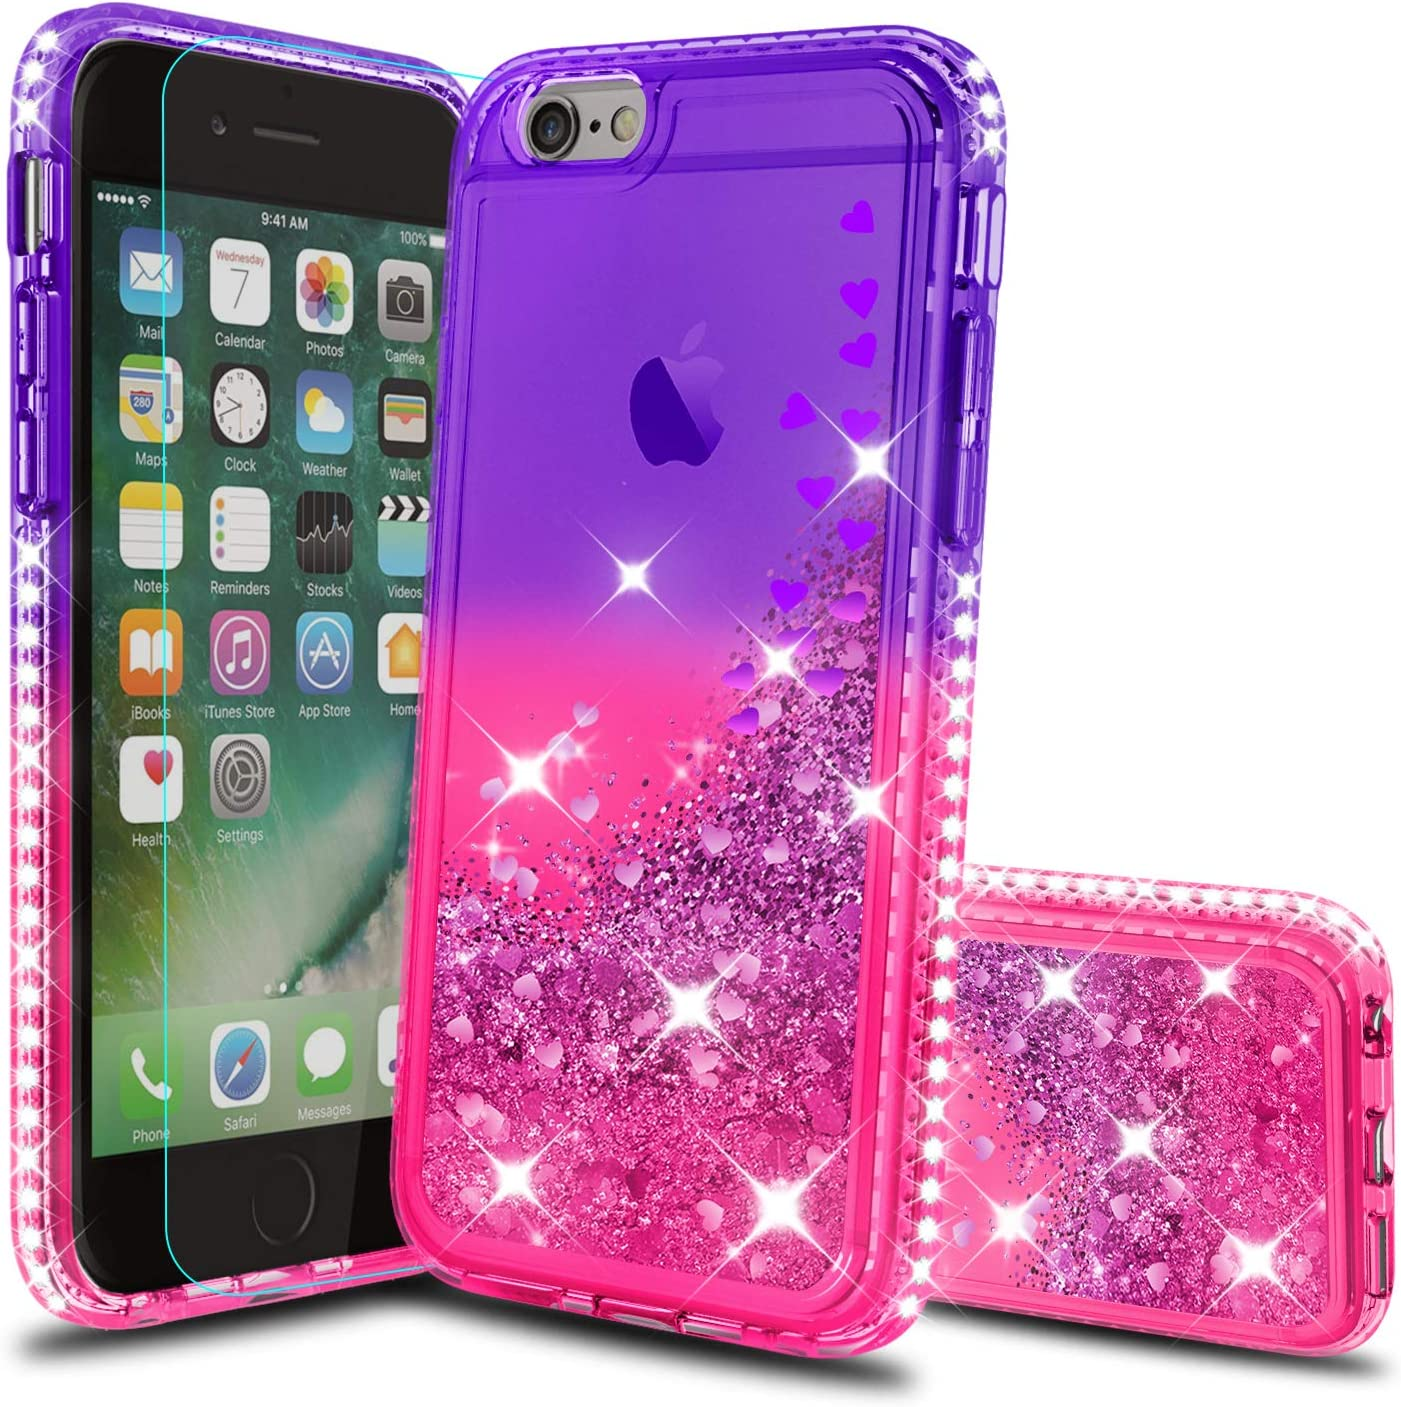 iPhone SE 2020 Case, iPhone 8 Case, iPhone 7 Case, iPhone 6s / 6 Case with HD Screen Protector for Girls Women, Atump Glitter Phone Case for Apple iPhone 6/ 6s/ 7/8 Purple/Rose